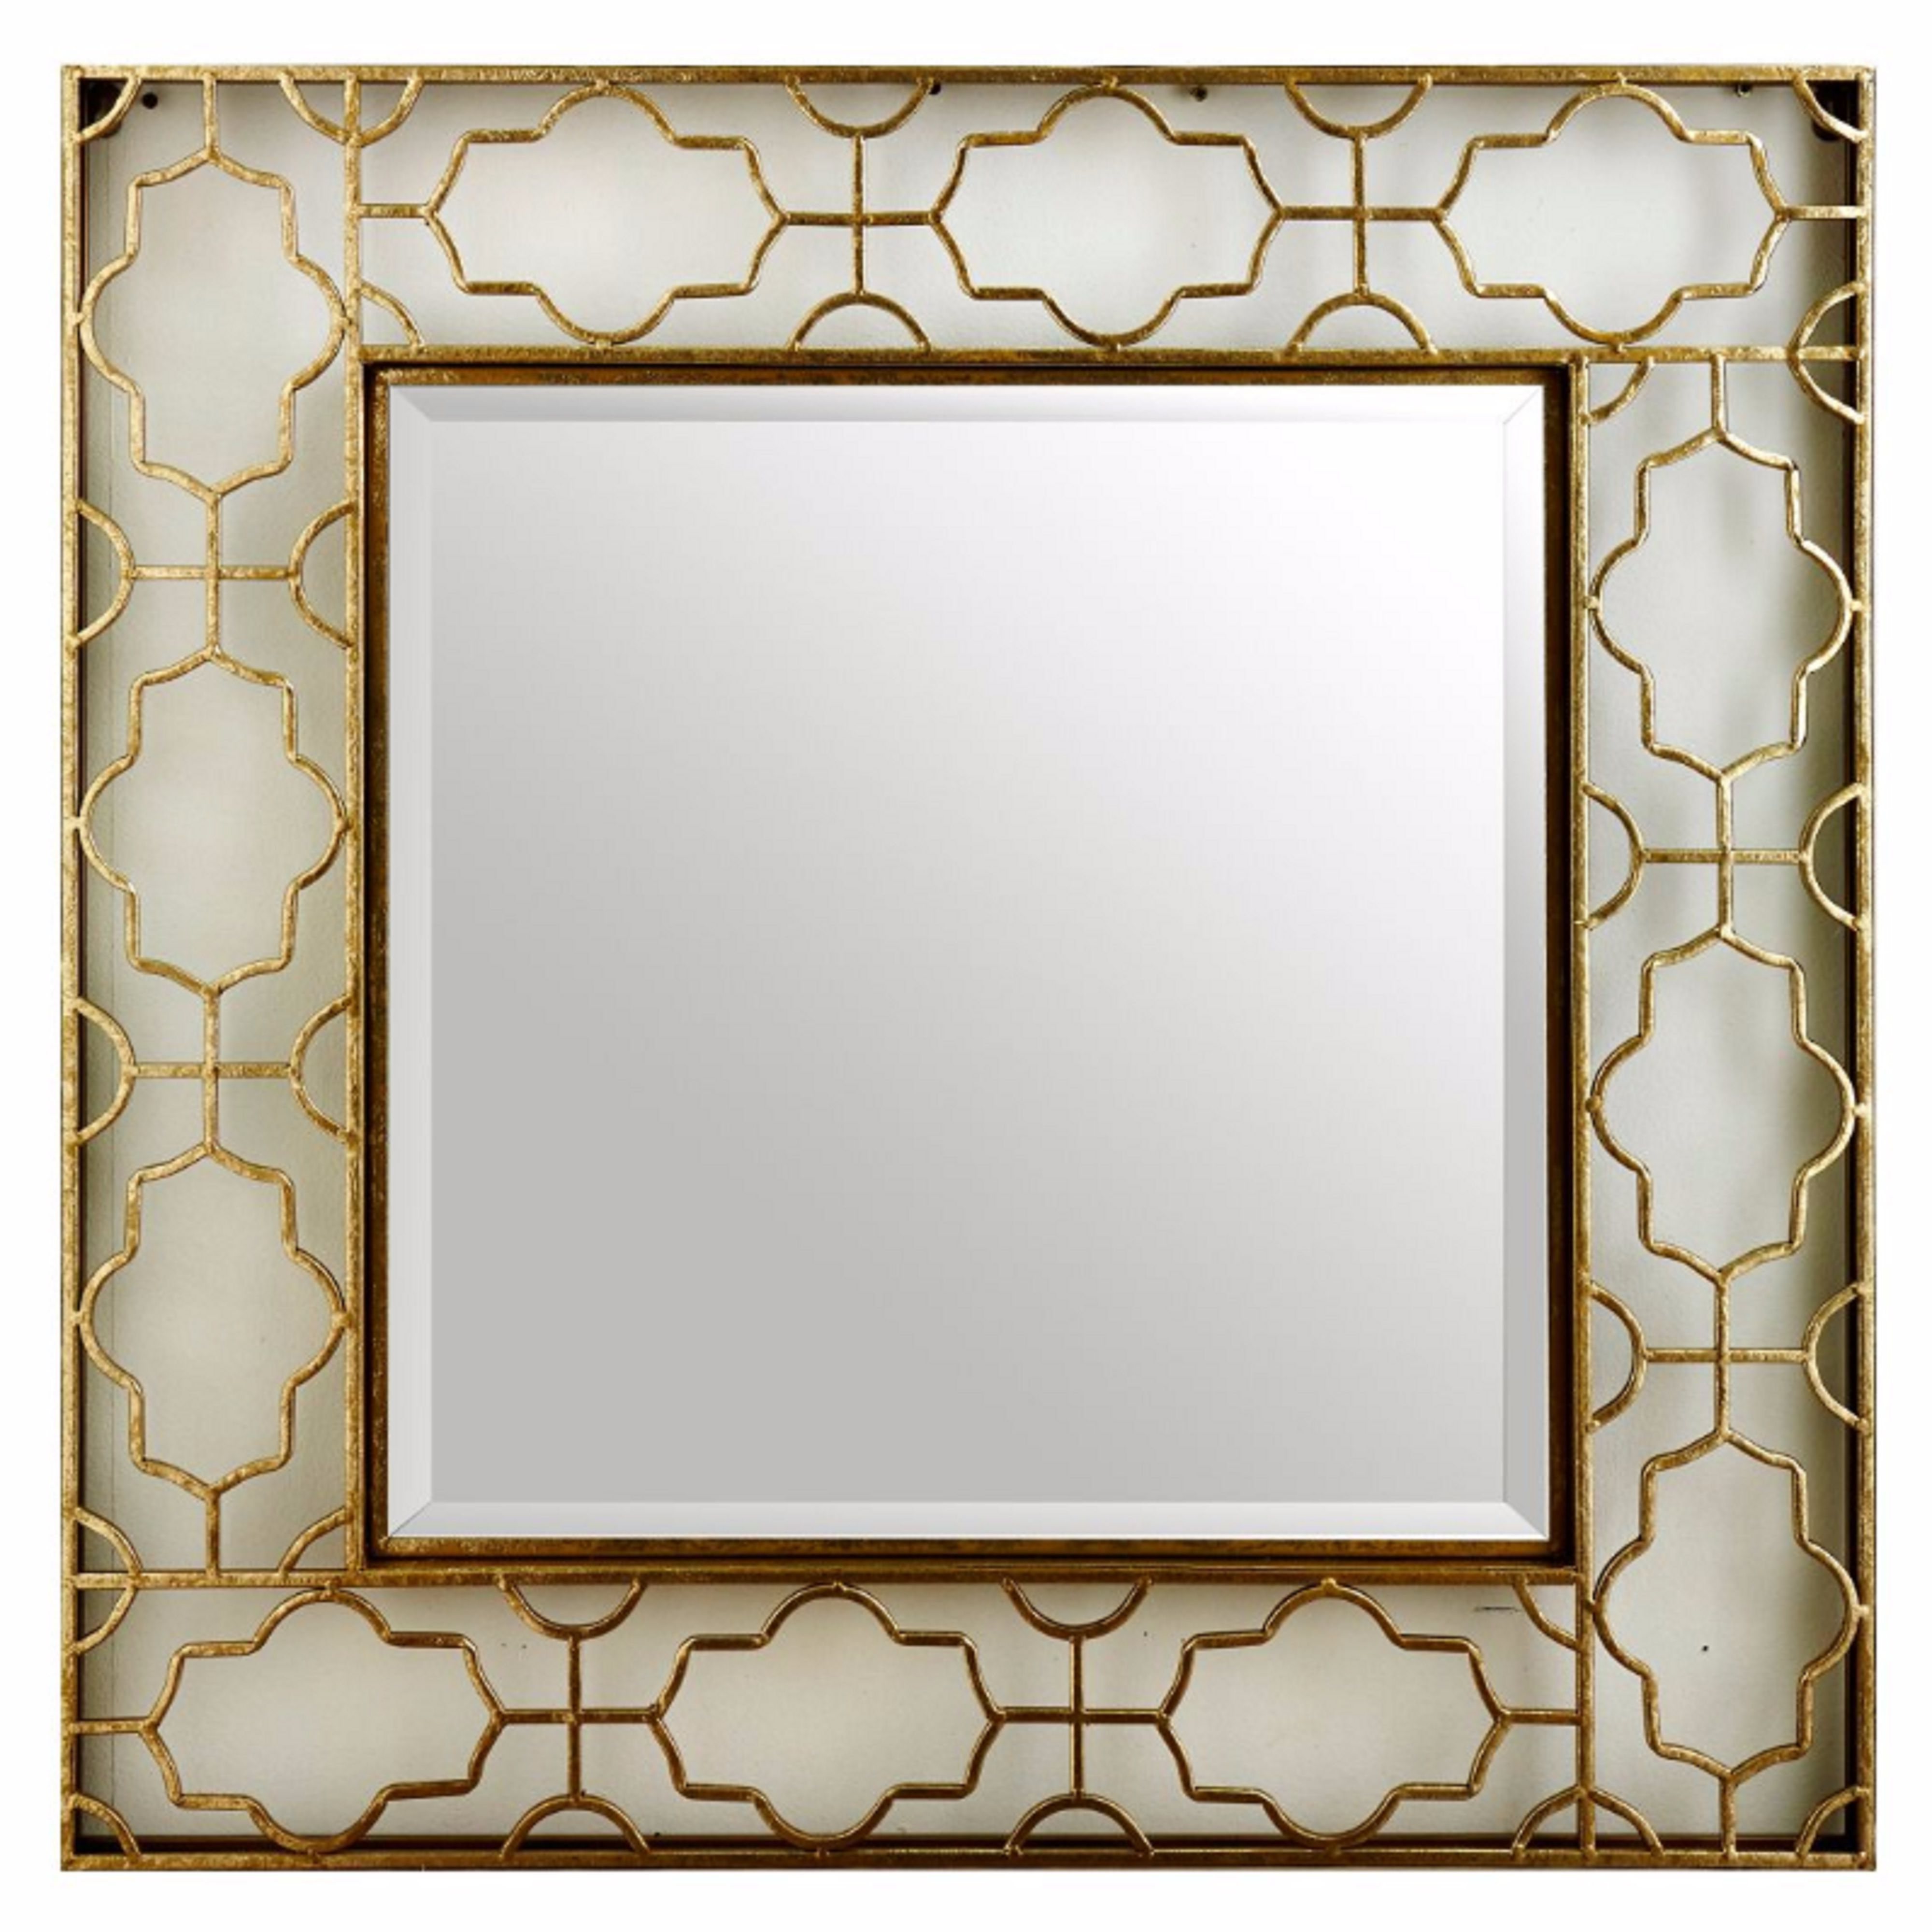 Funky Wall Mirrors Pertaining To Newest 10 Fabulous Statement Wall Mirrors (View 7 of 20)